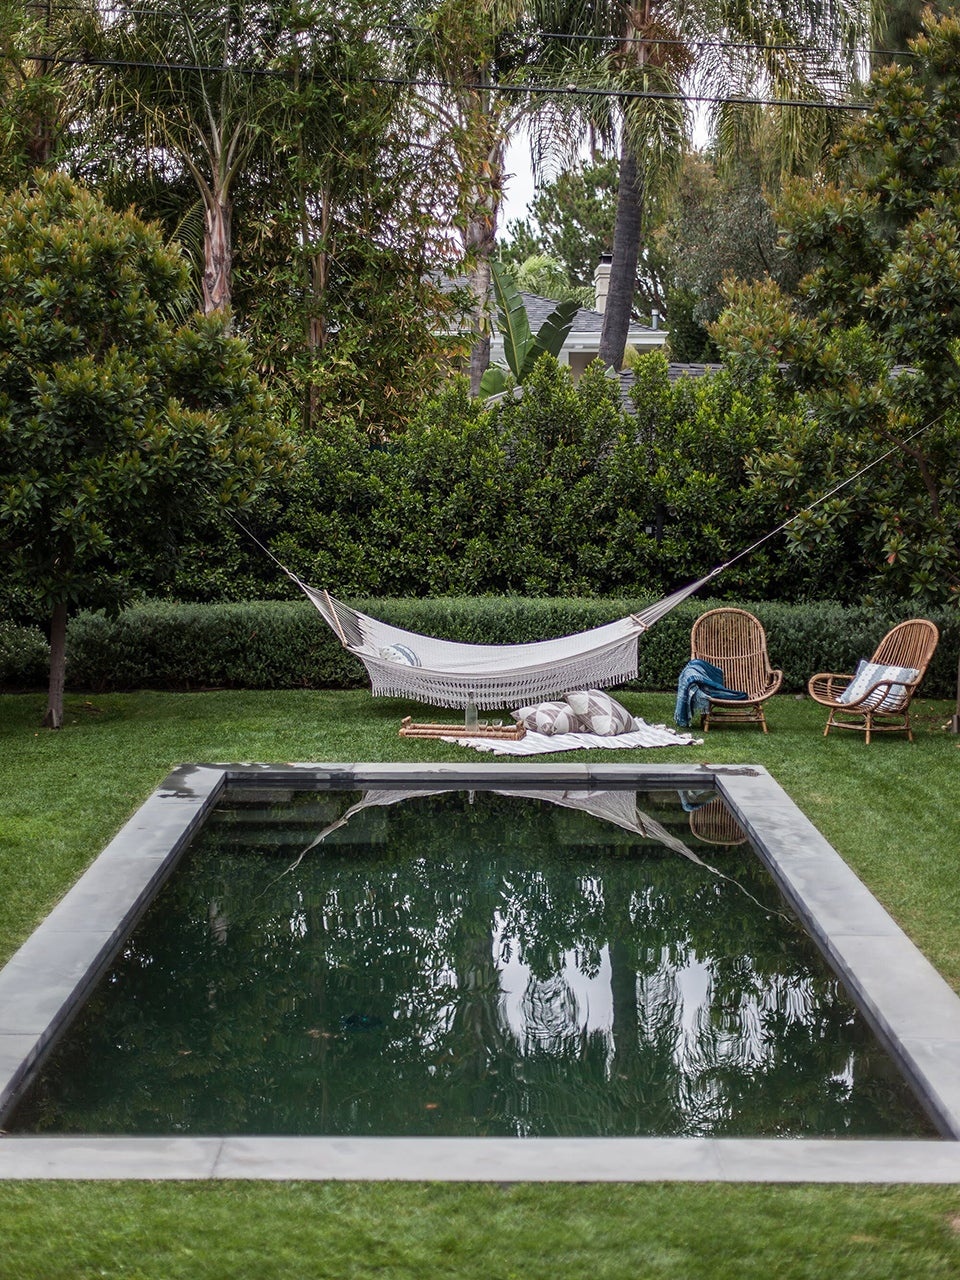 Intense Sofa Sales, Luxe Linen Pajamas, and the Coolest Hammock We've Ever Seen